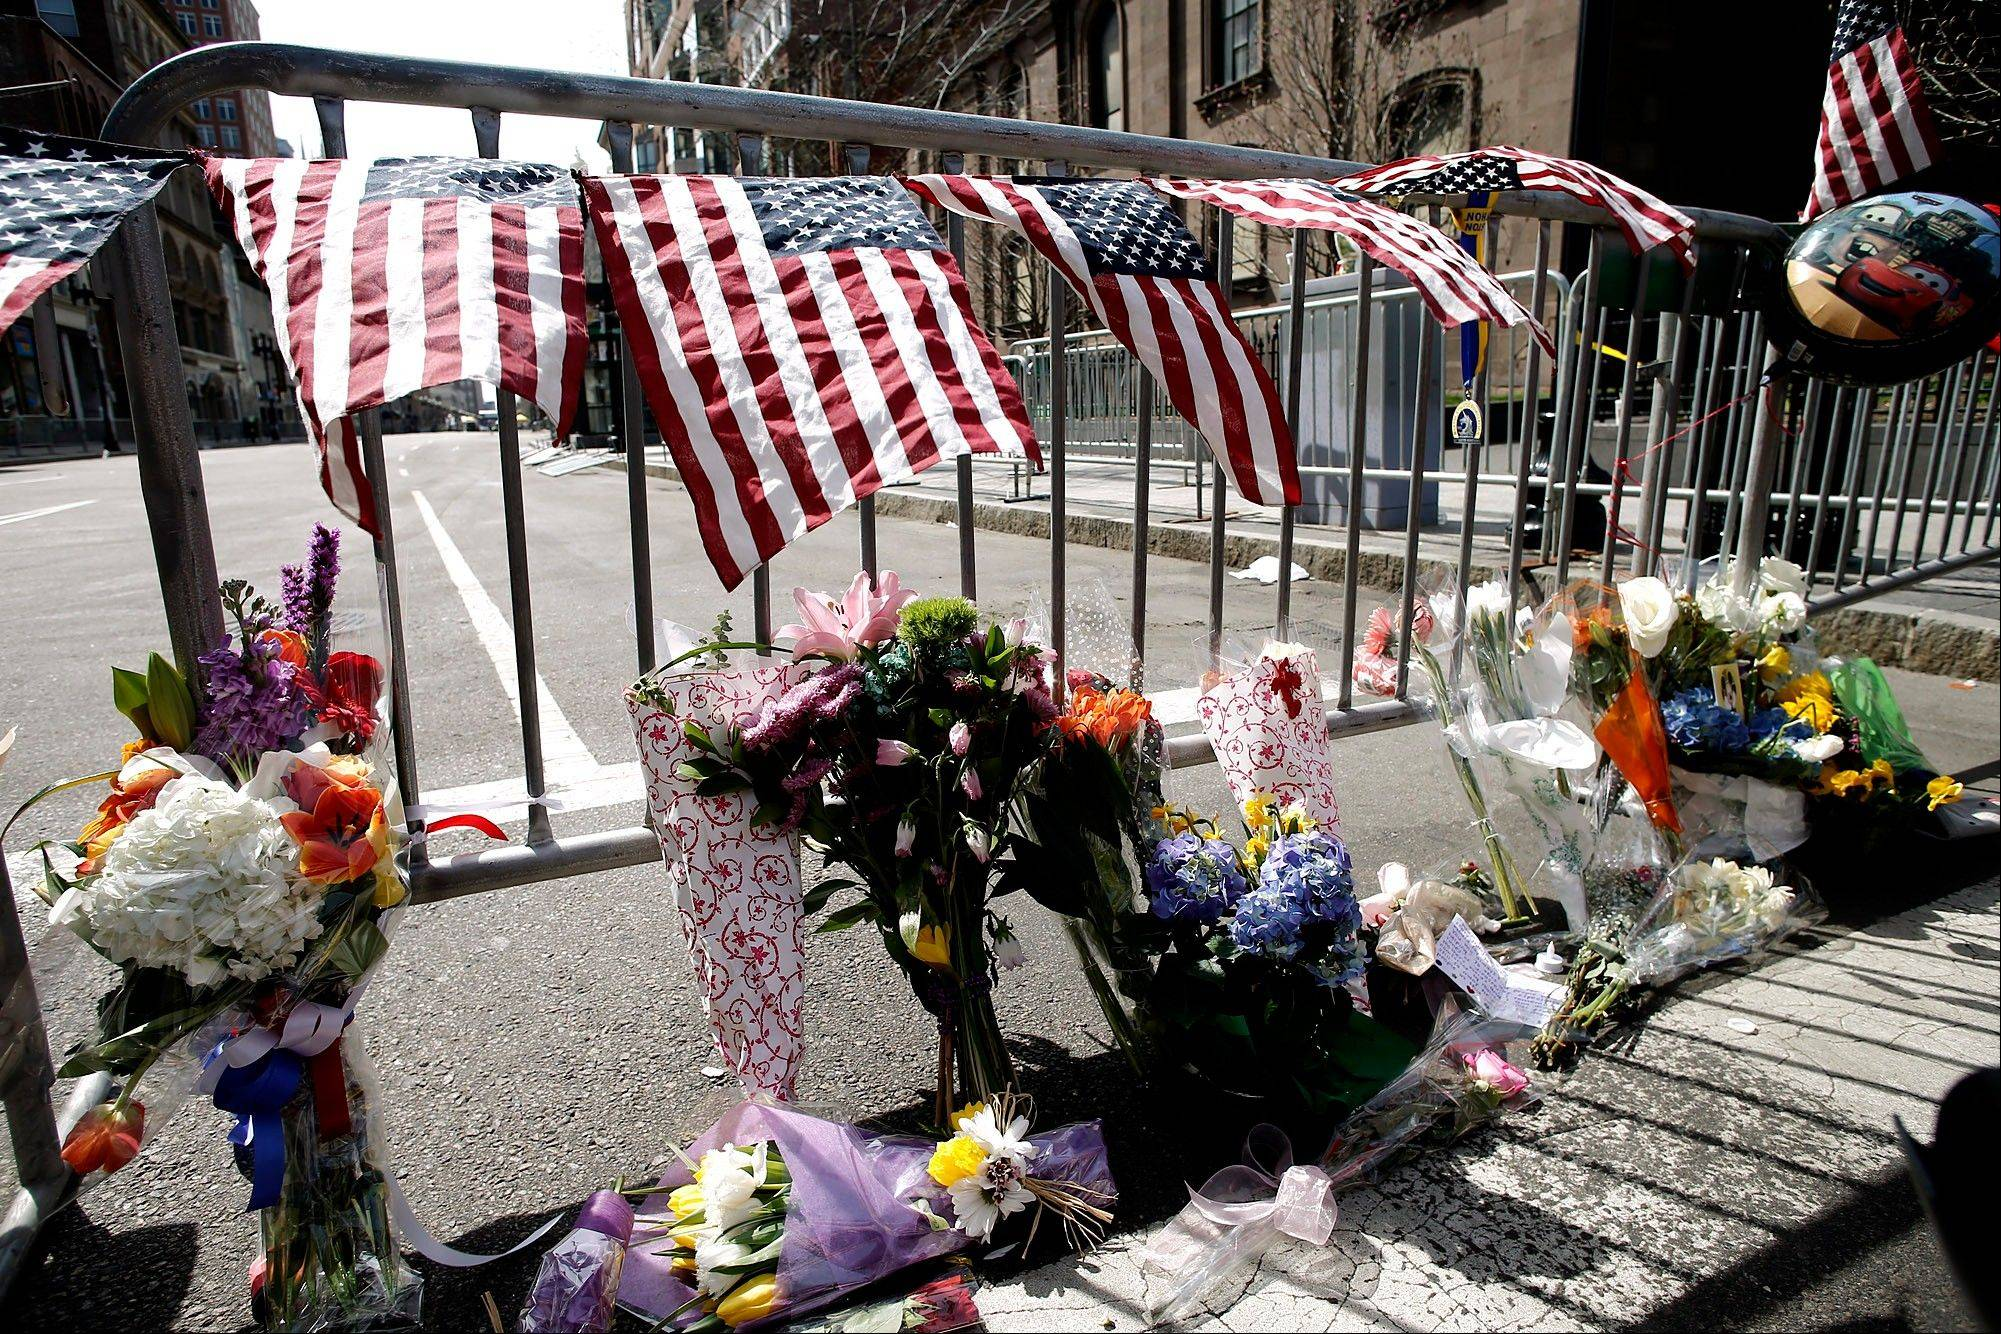 What others are saying about Boston bombing